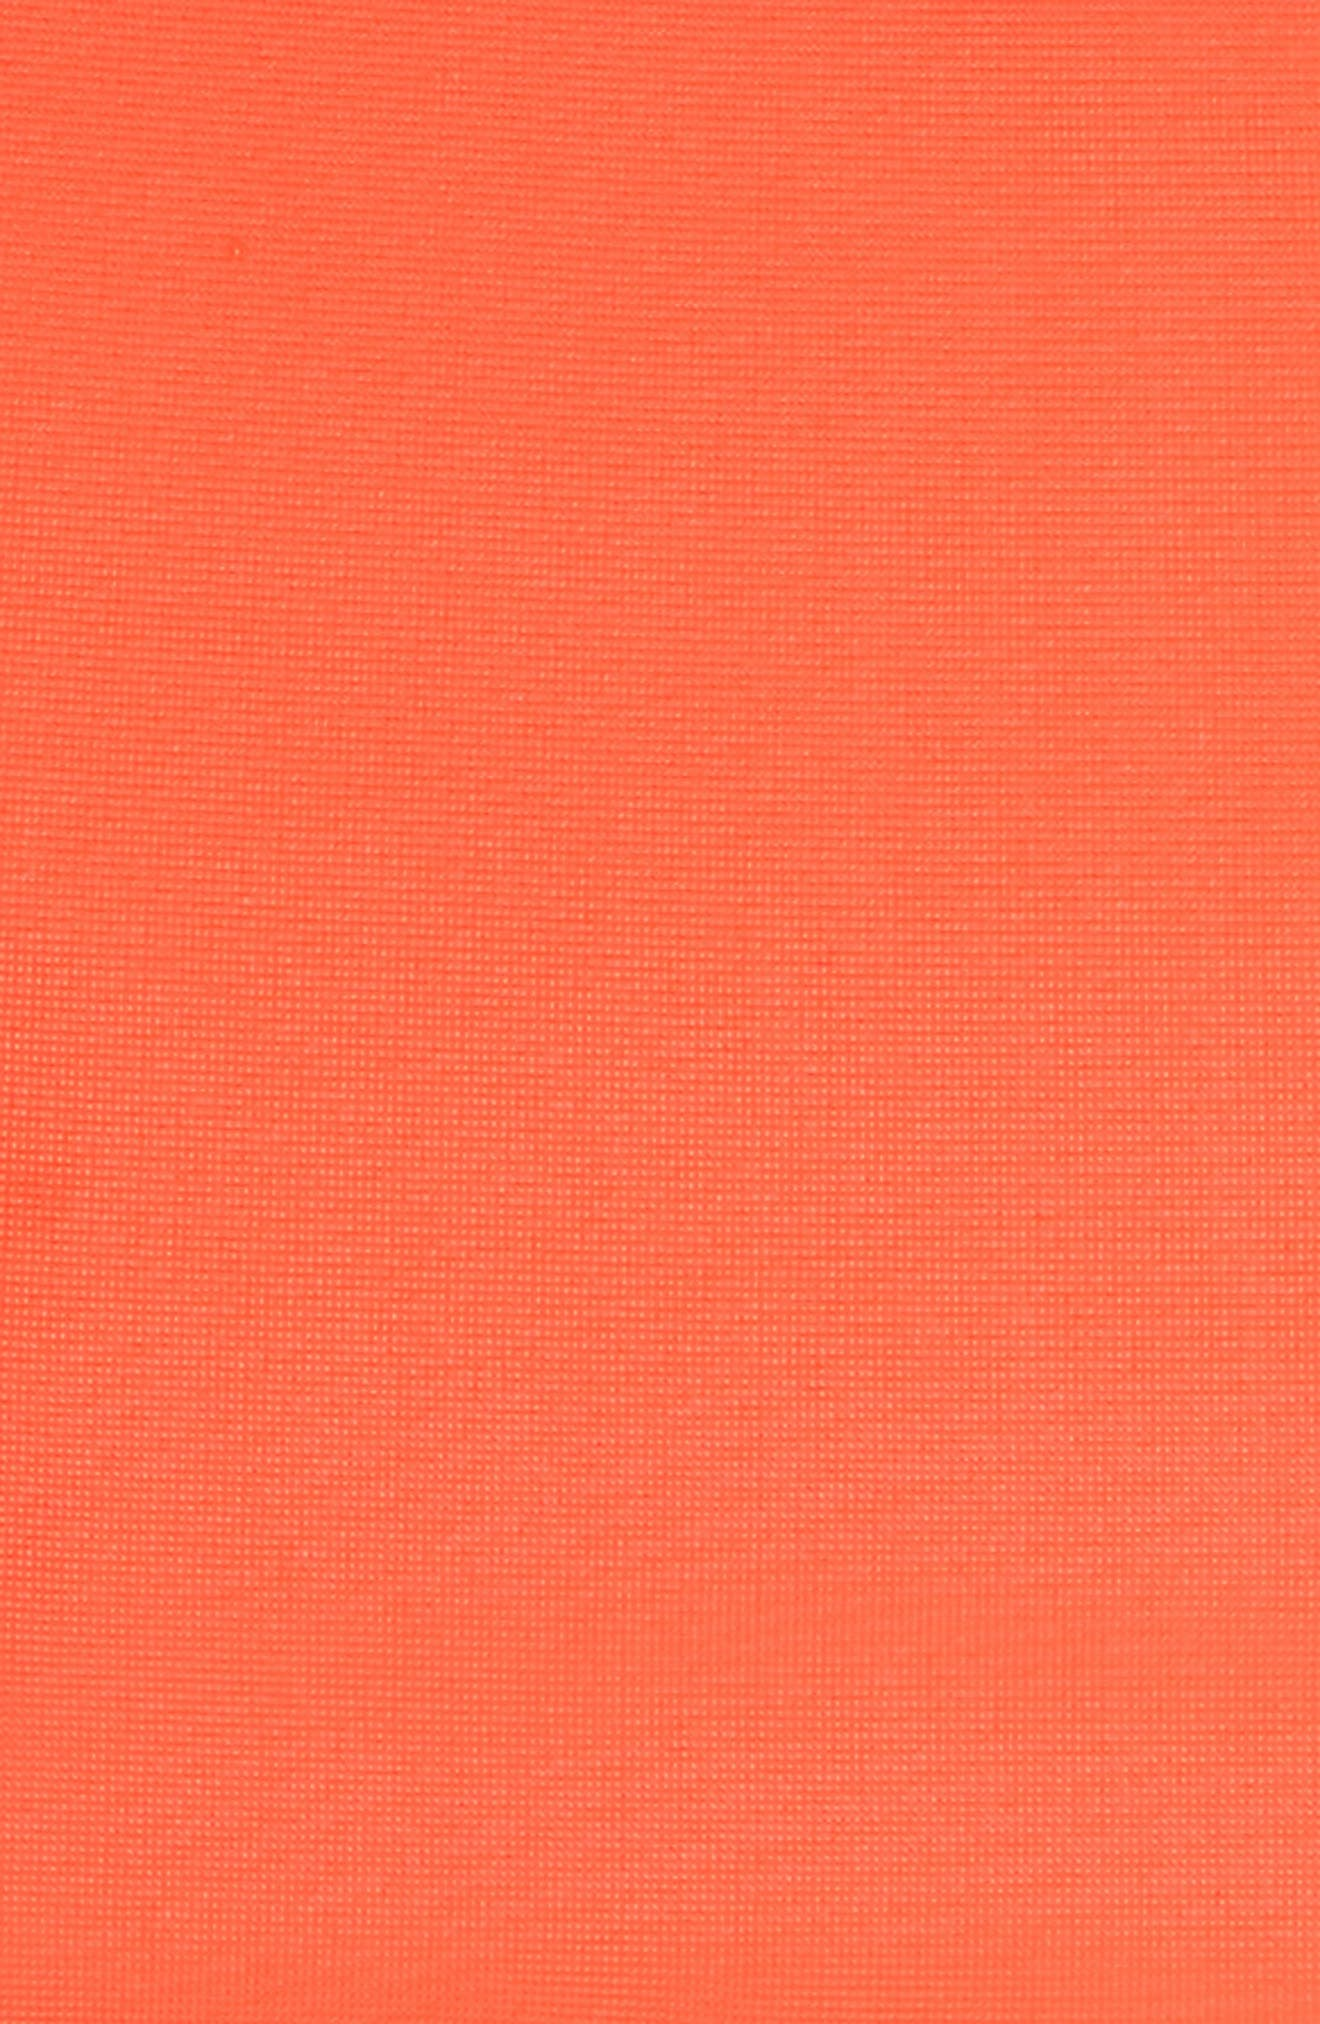 Skim Bikini Top,                             Alternate thumbnail 5, color,                             Neon Lava Orange